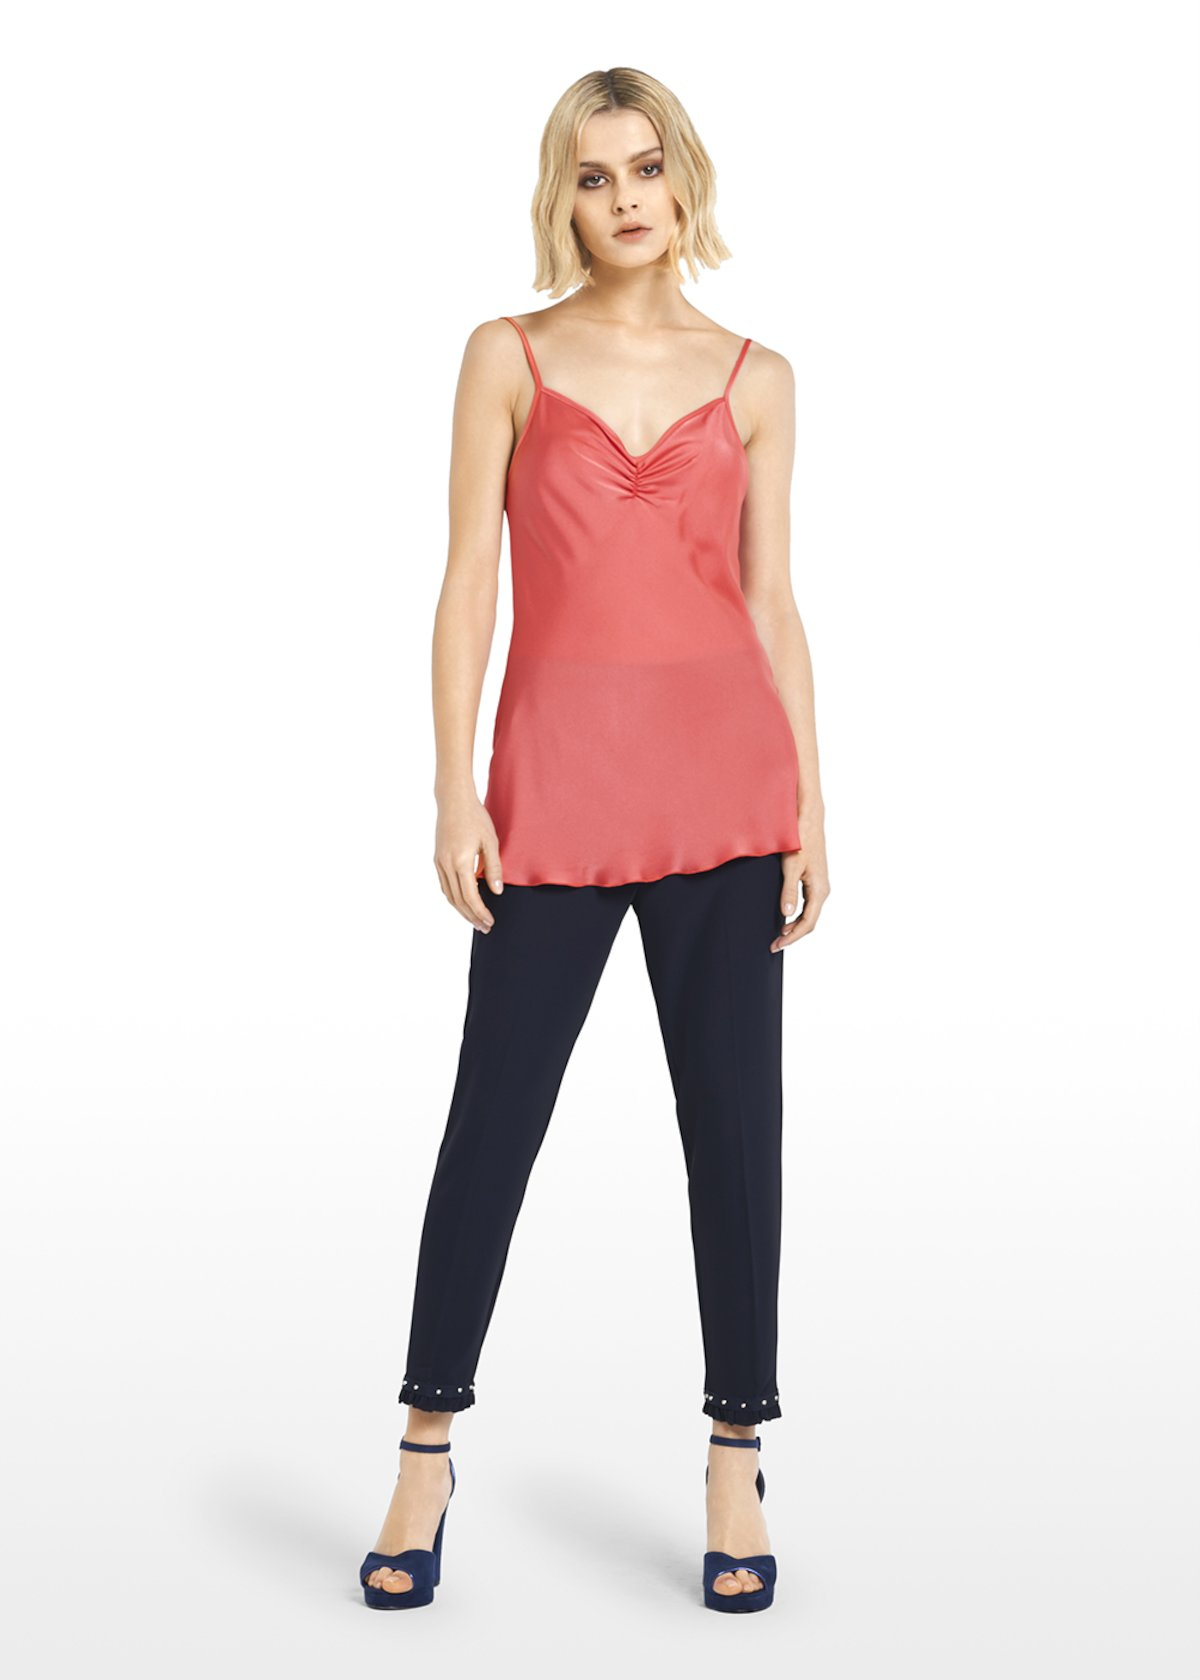 Thil coral Top with pleat detail at neckline - Flamingo - Woman